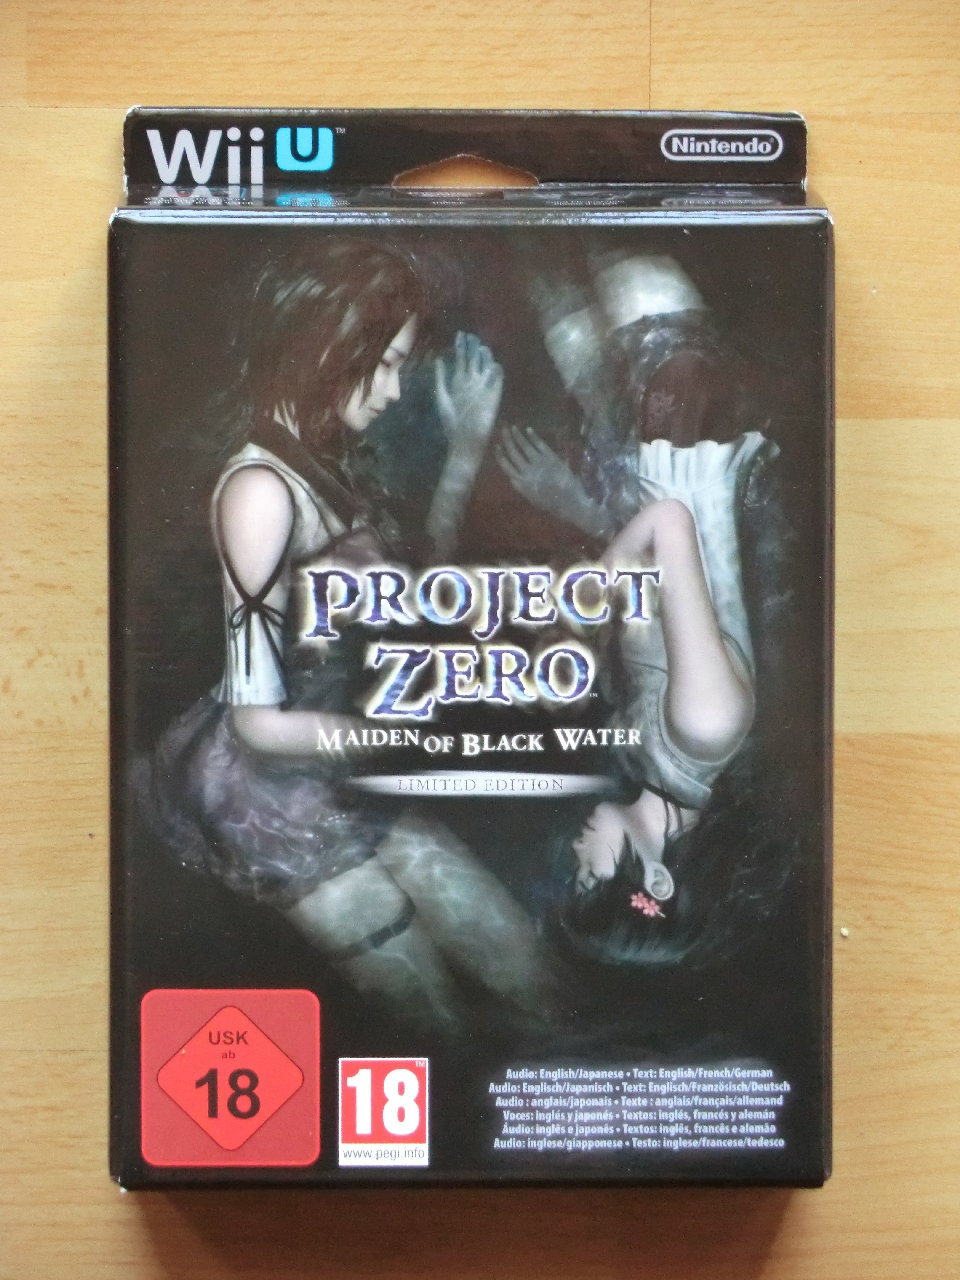 Project Zero Maiden of Black Water Wii U Survival Horror Fatal Frame Limited Edition